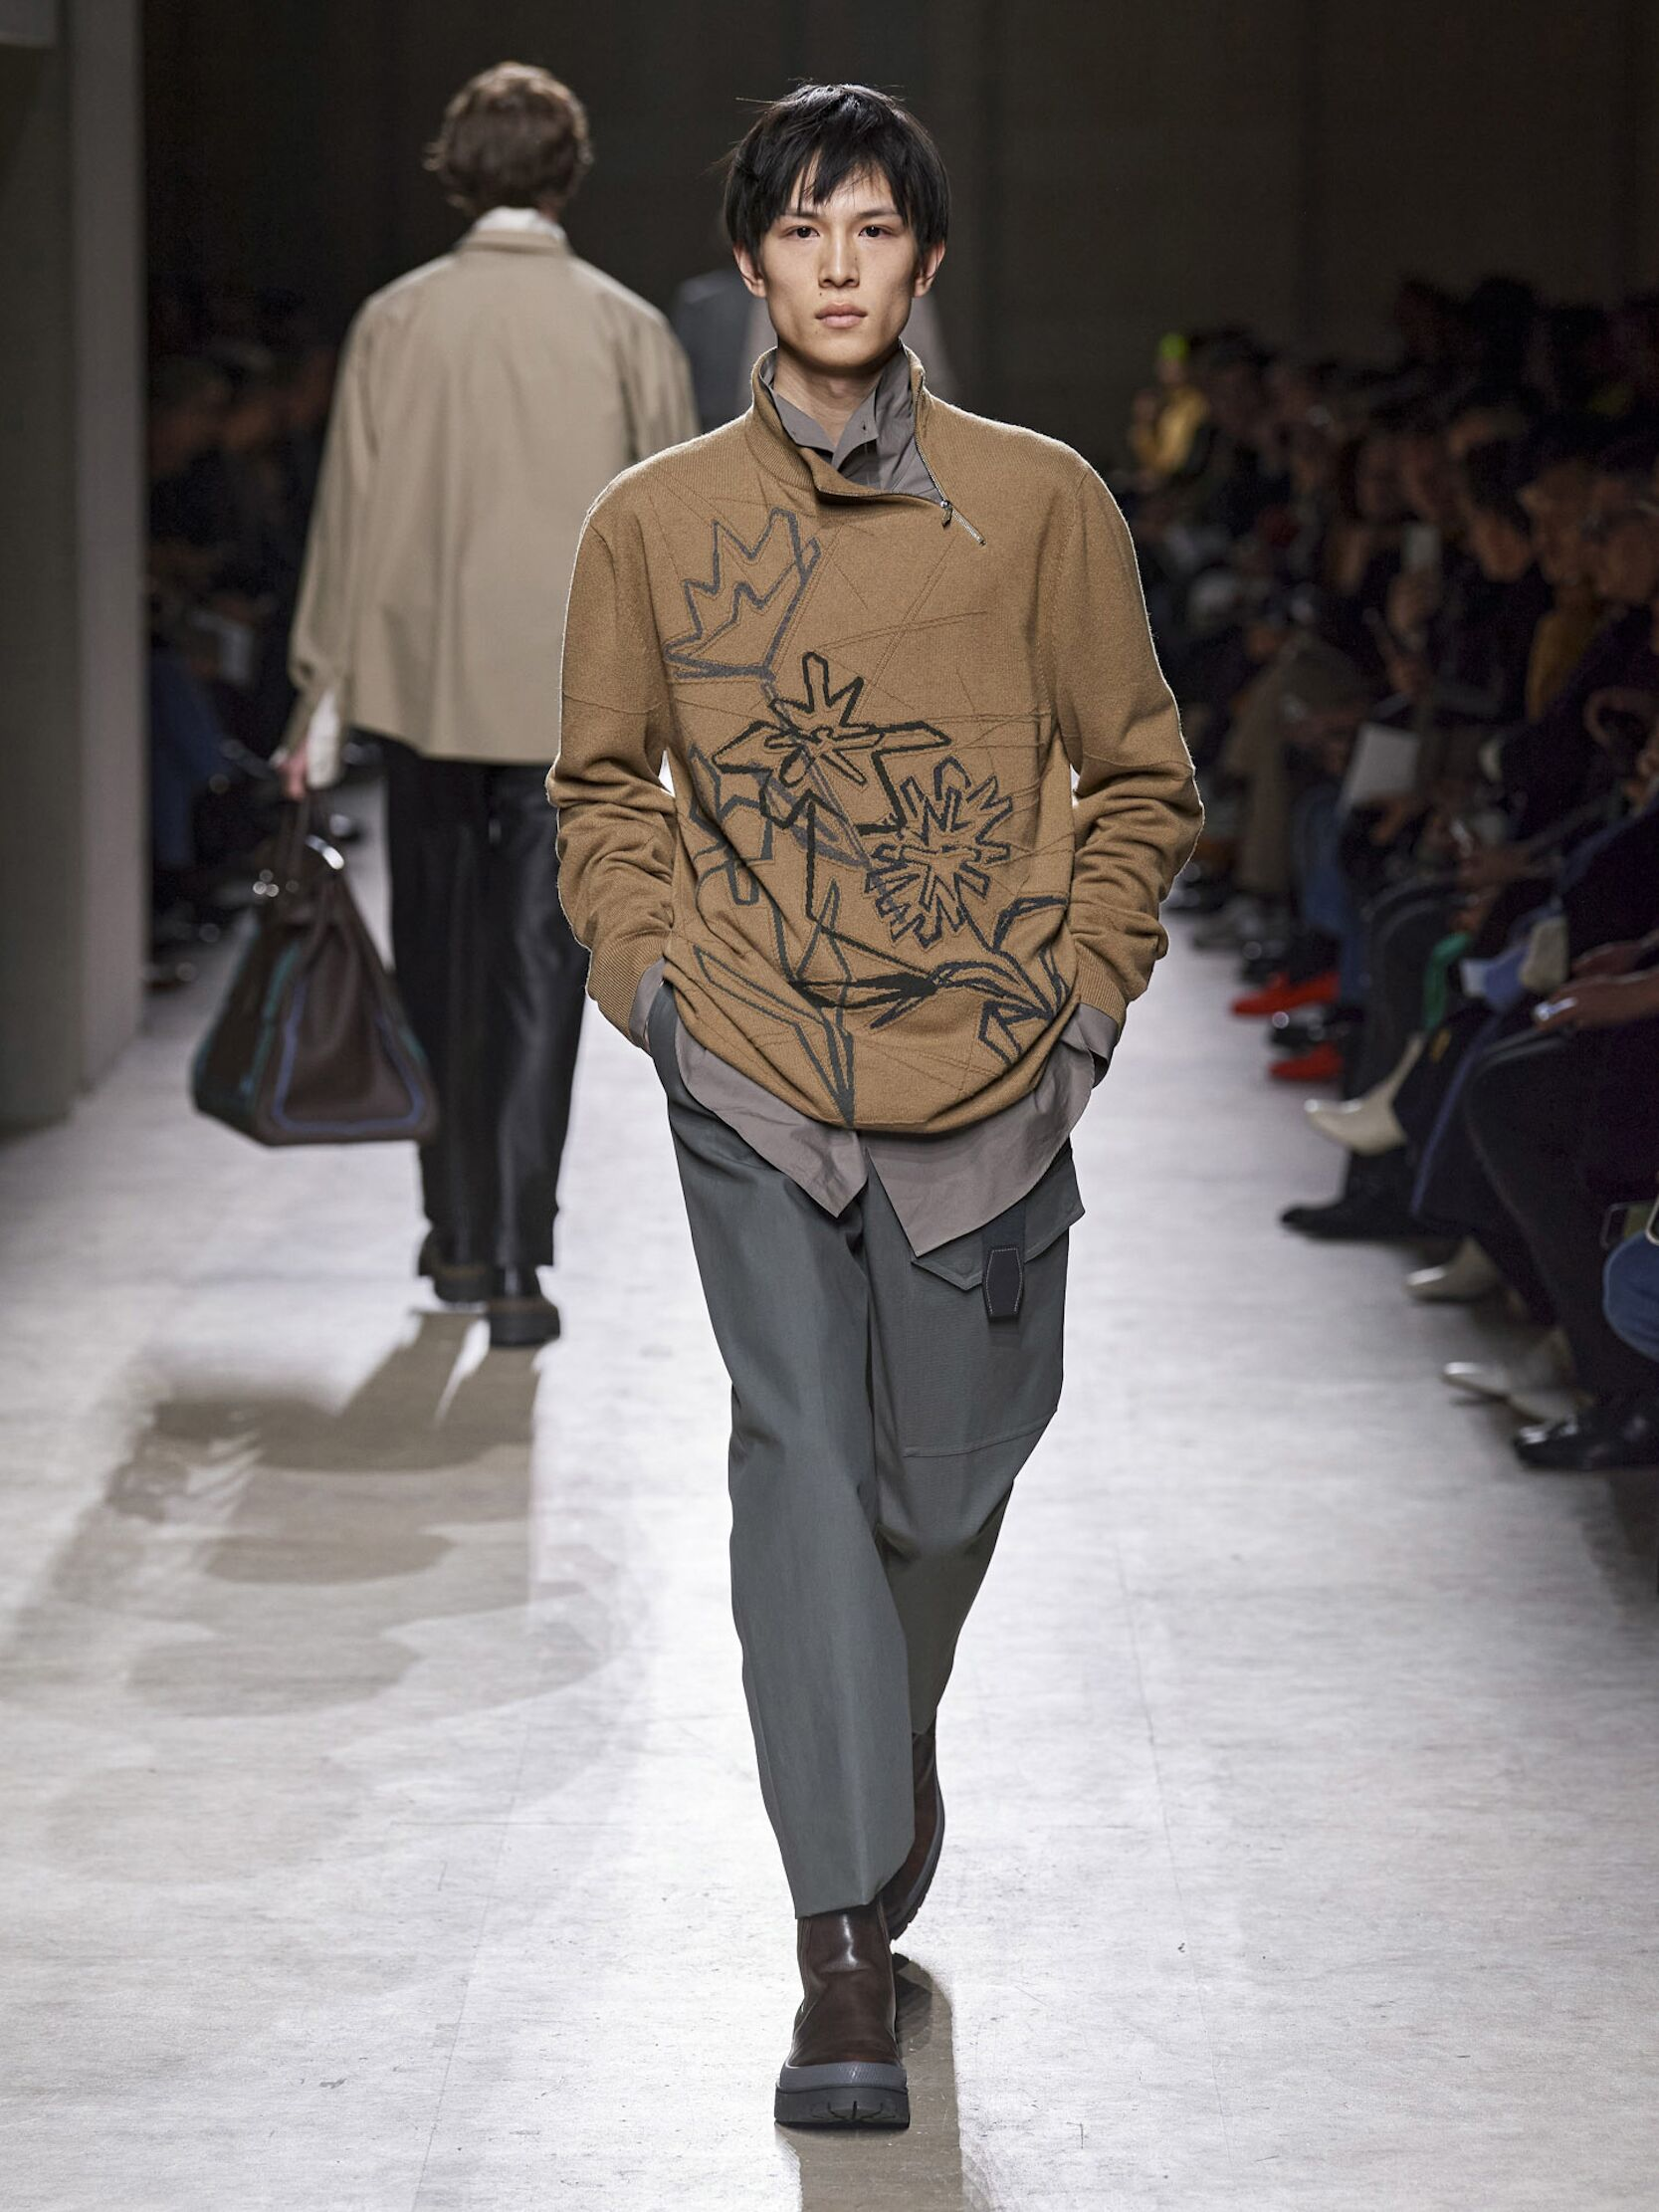 Catwalk Hermès Man Fashion Show Winter 2020